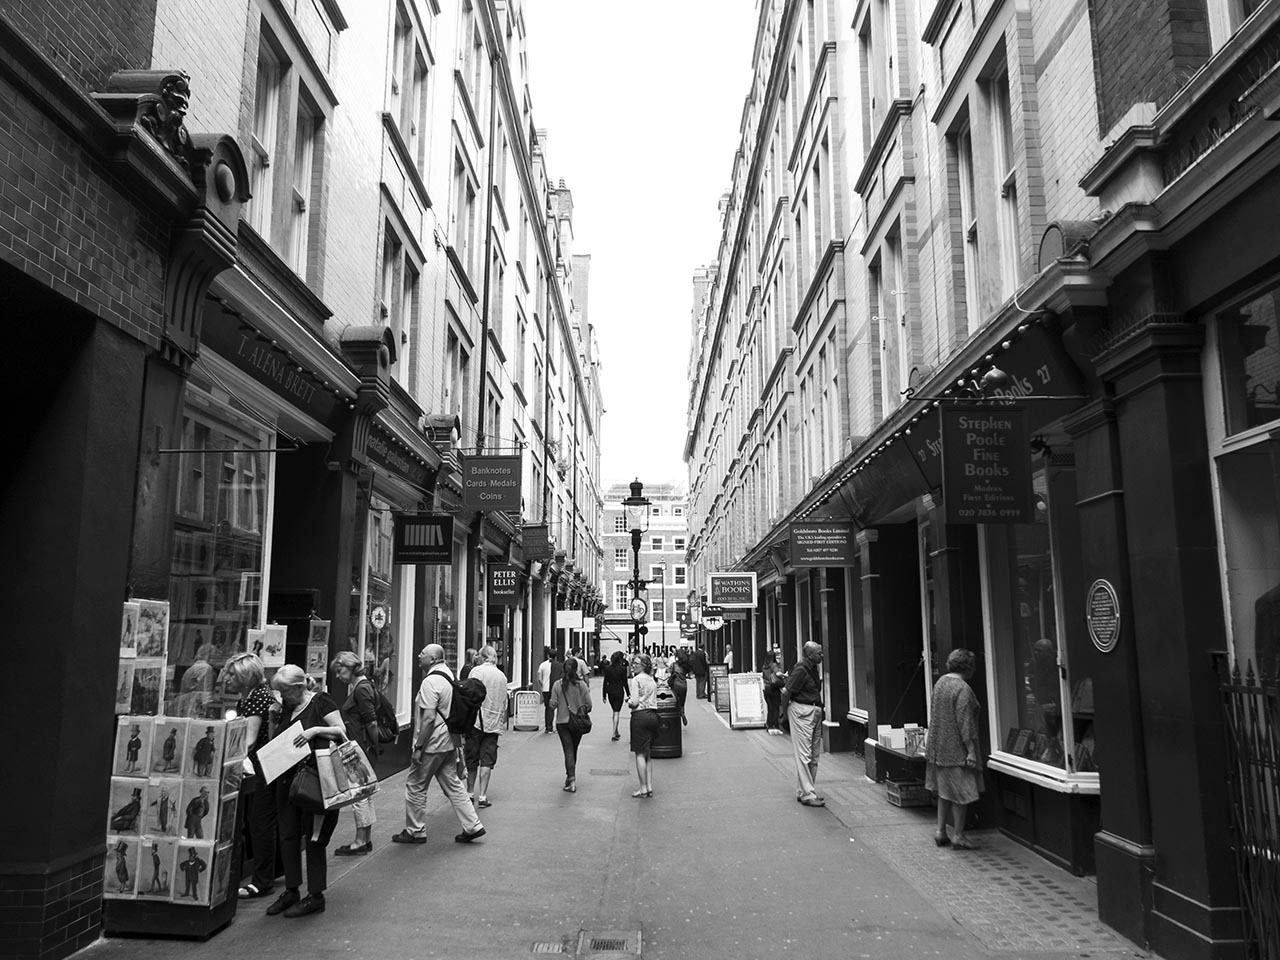 Cecil Court, London.     Home to half a dozen rare and antique bookstores. One of my favourite streets in the city.